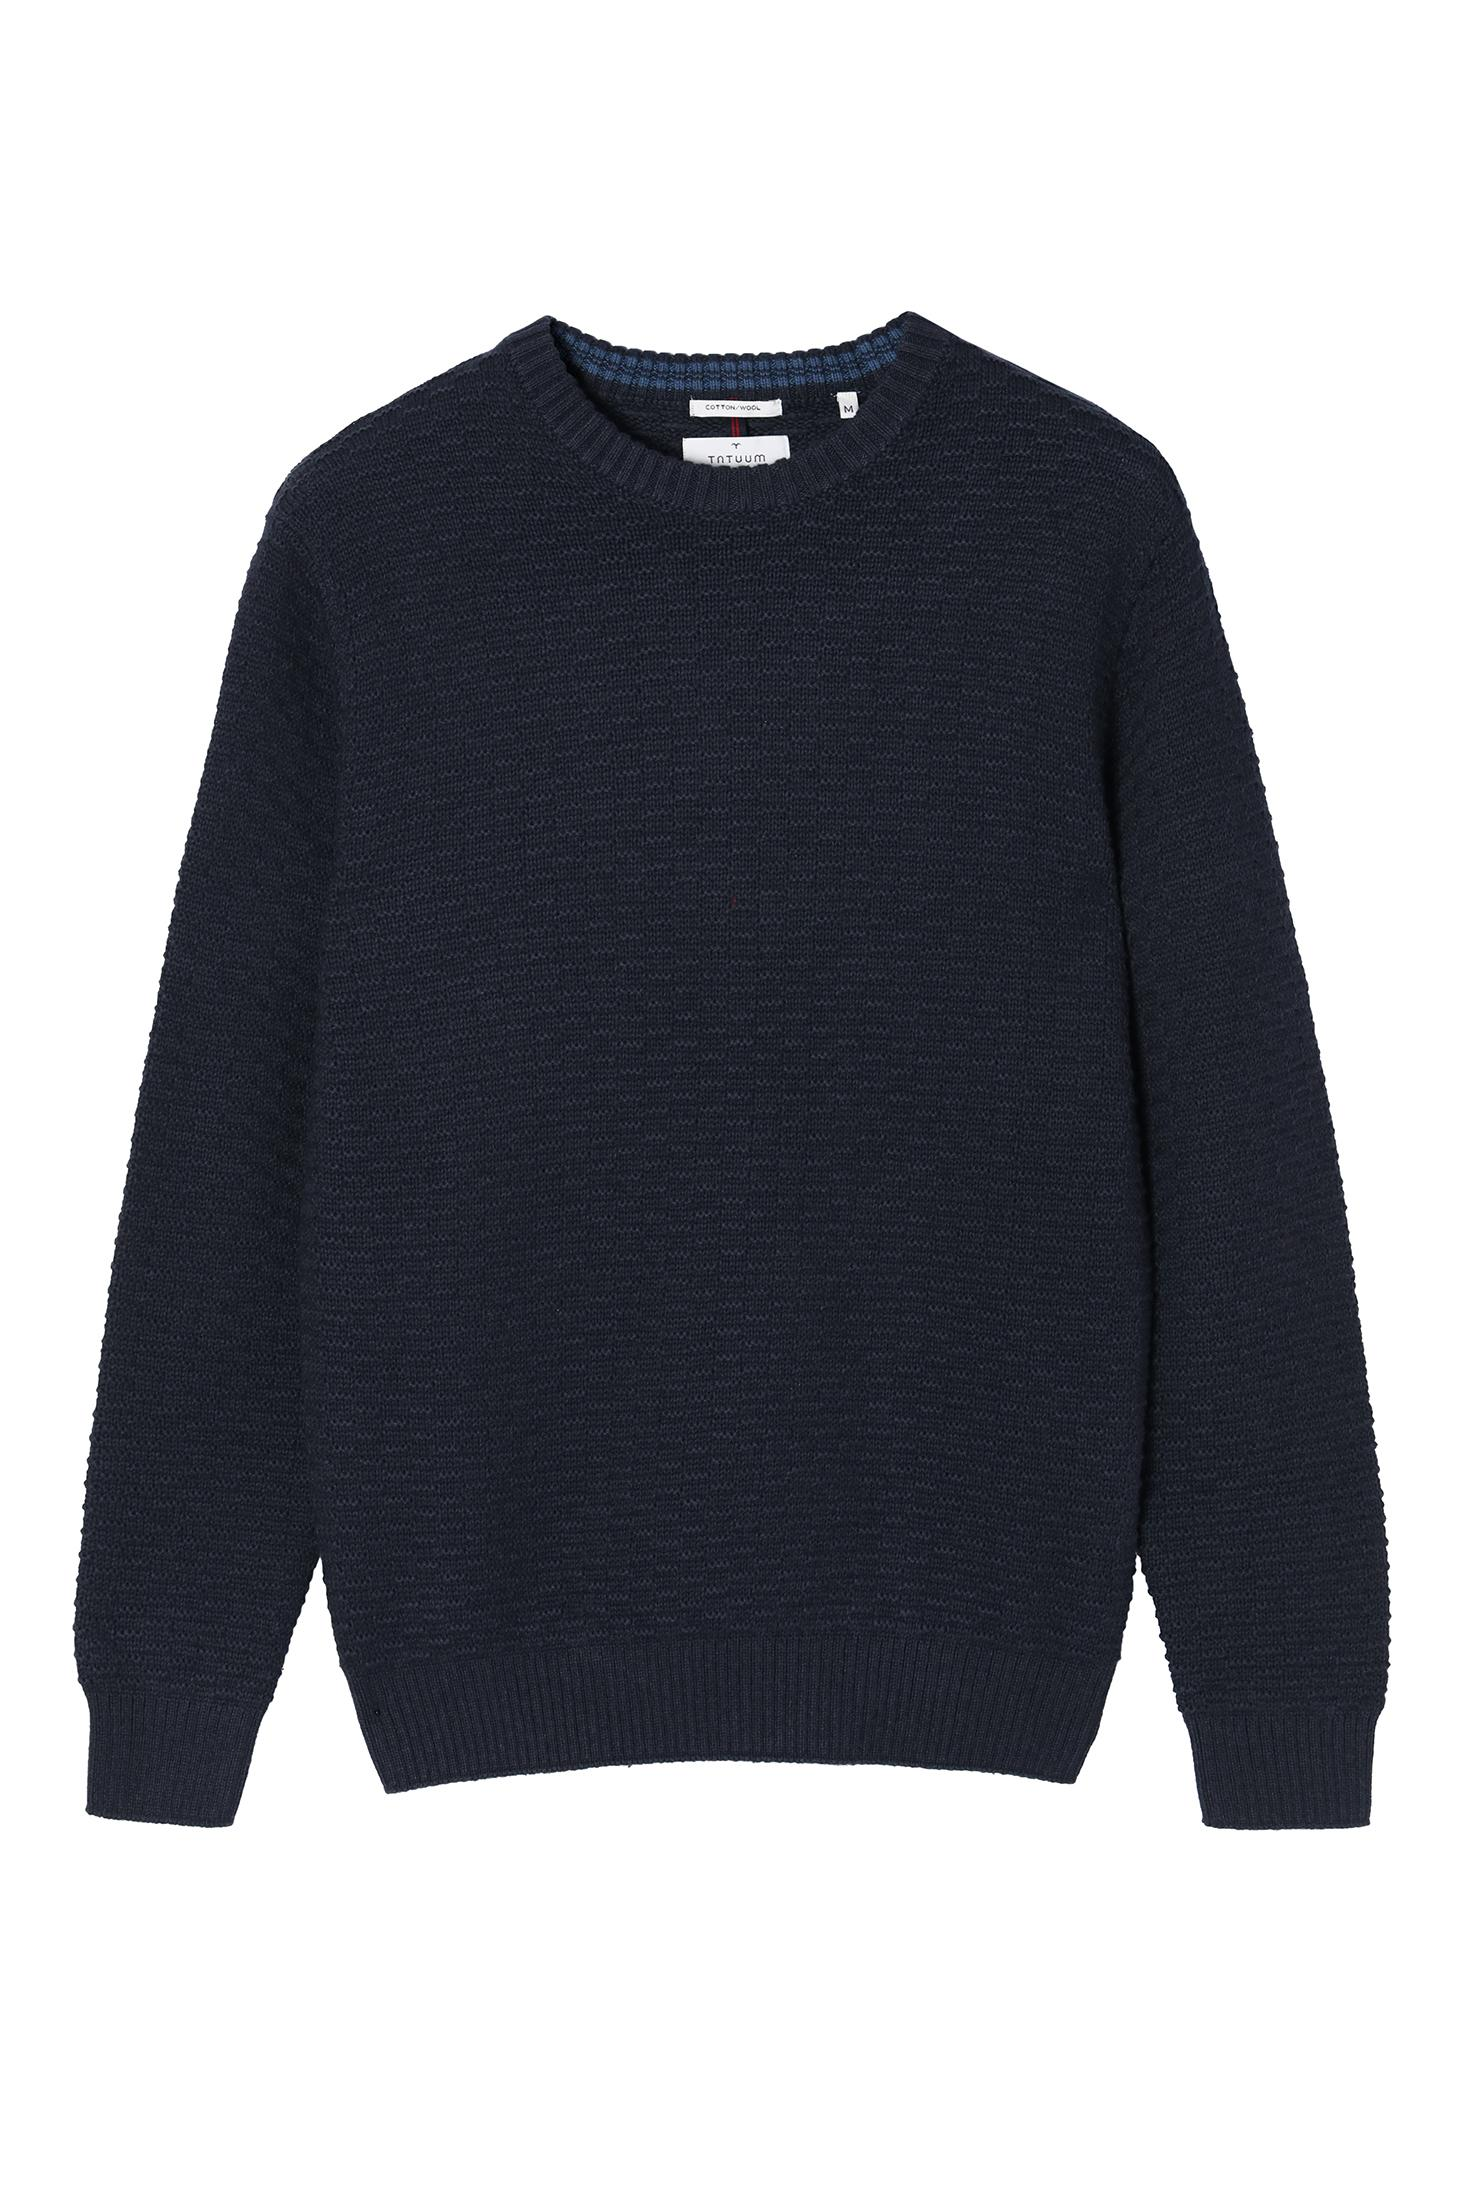 MEN'S SWEATER WITH WOOL TRICK 4A